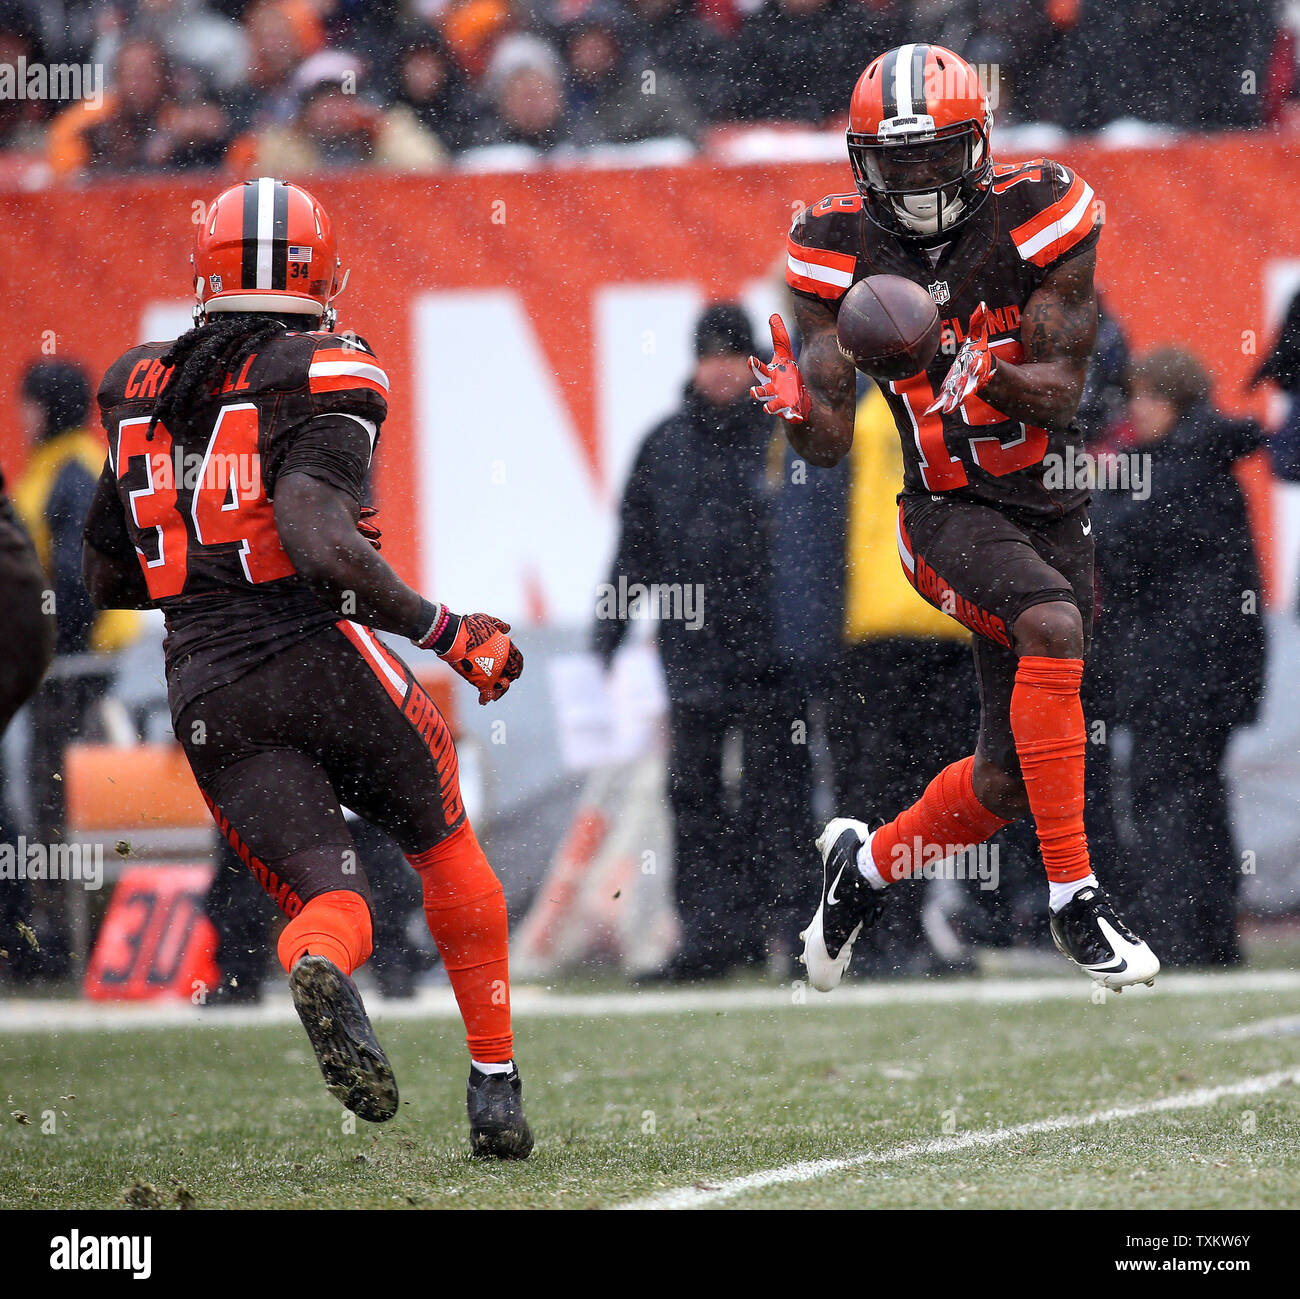 Cleveland Browns Corey Coleman takes a pitch on a reverse from Isiah Crowell during the first  quarter against the Cincinnati Bengals at FirstEnergy Stadium in Cleveland on December 11, 2016. Photo by Aaron Josefczyk/UPI Stock Photo